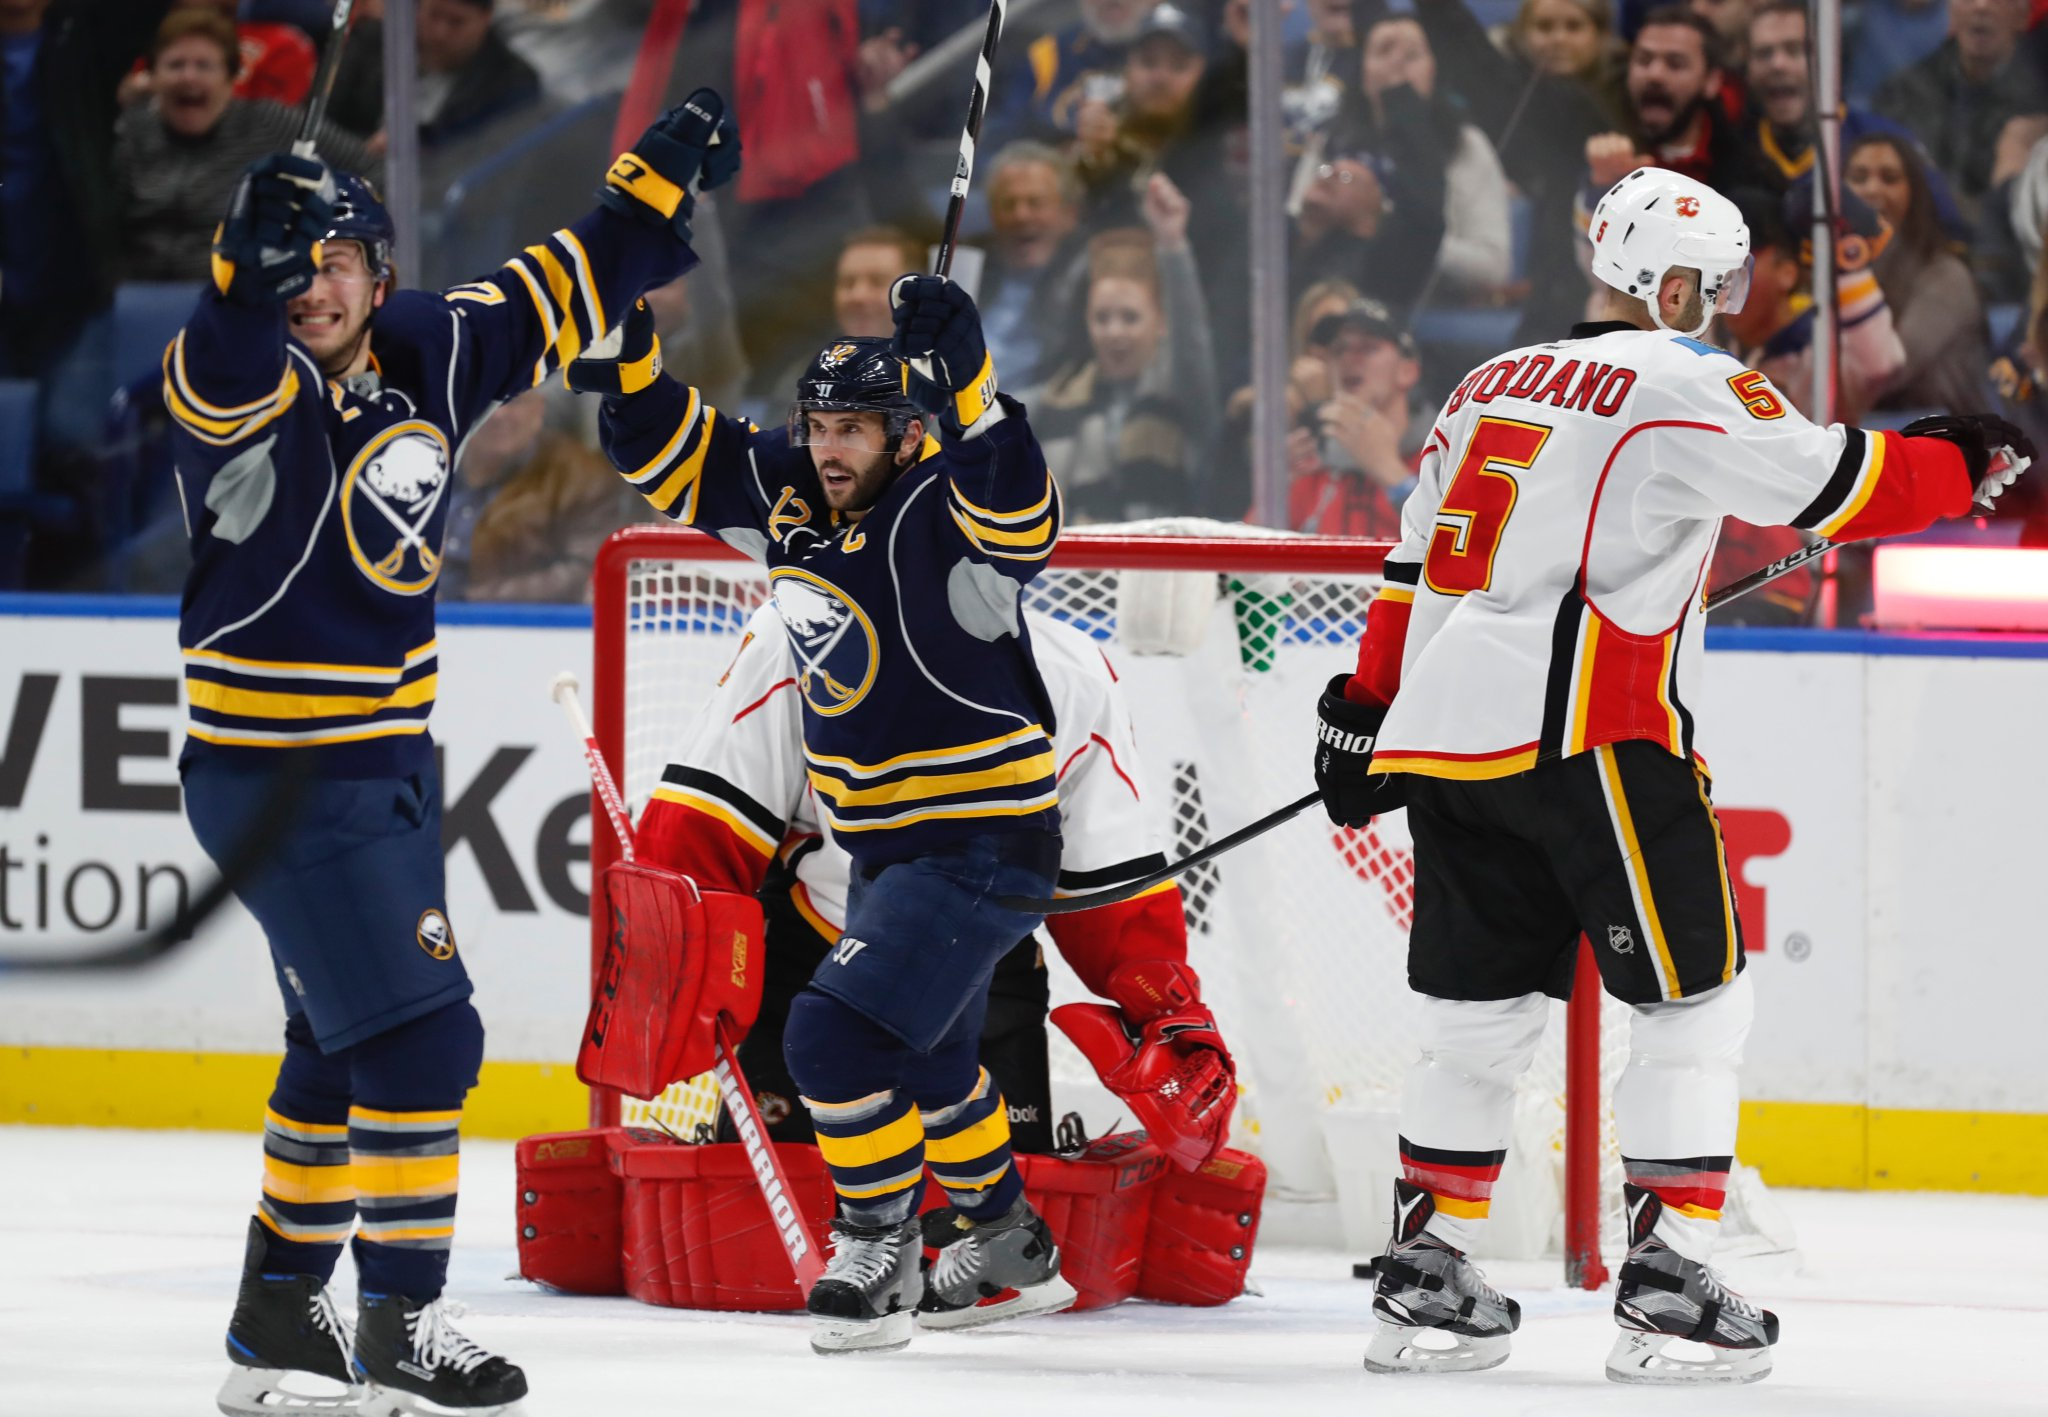 Johan Larsson, left, and Brian Gionta celebrate as Larsson puts the Sabres up, 2-1. (Harry Scull Jr./Buffalo News)